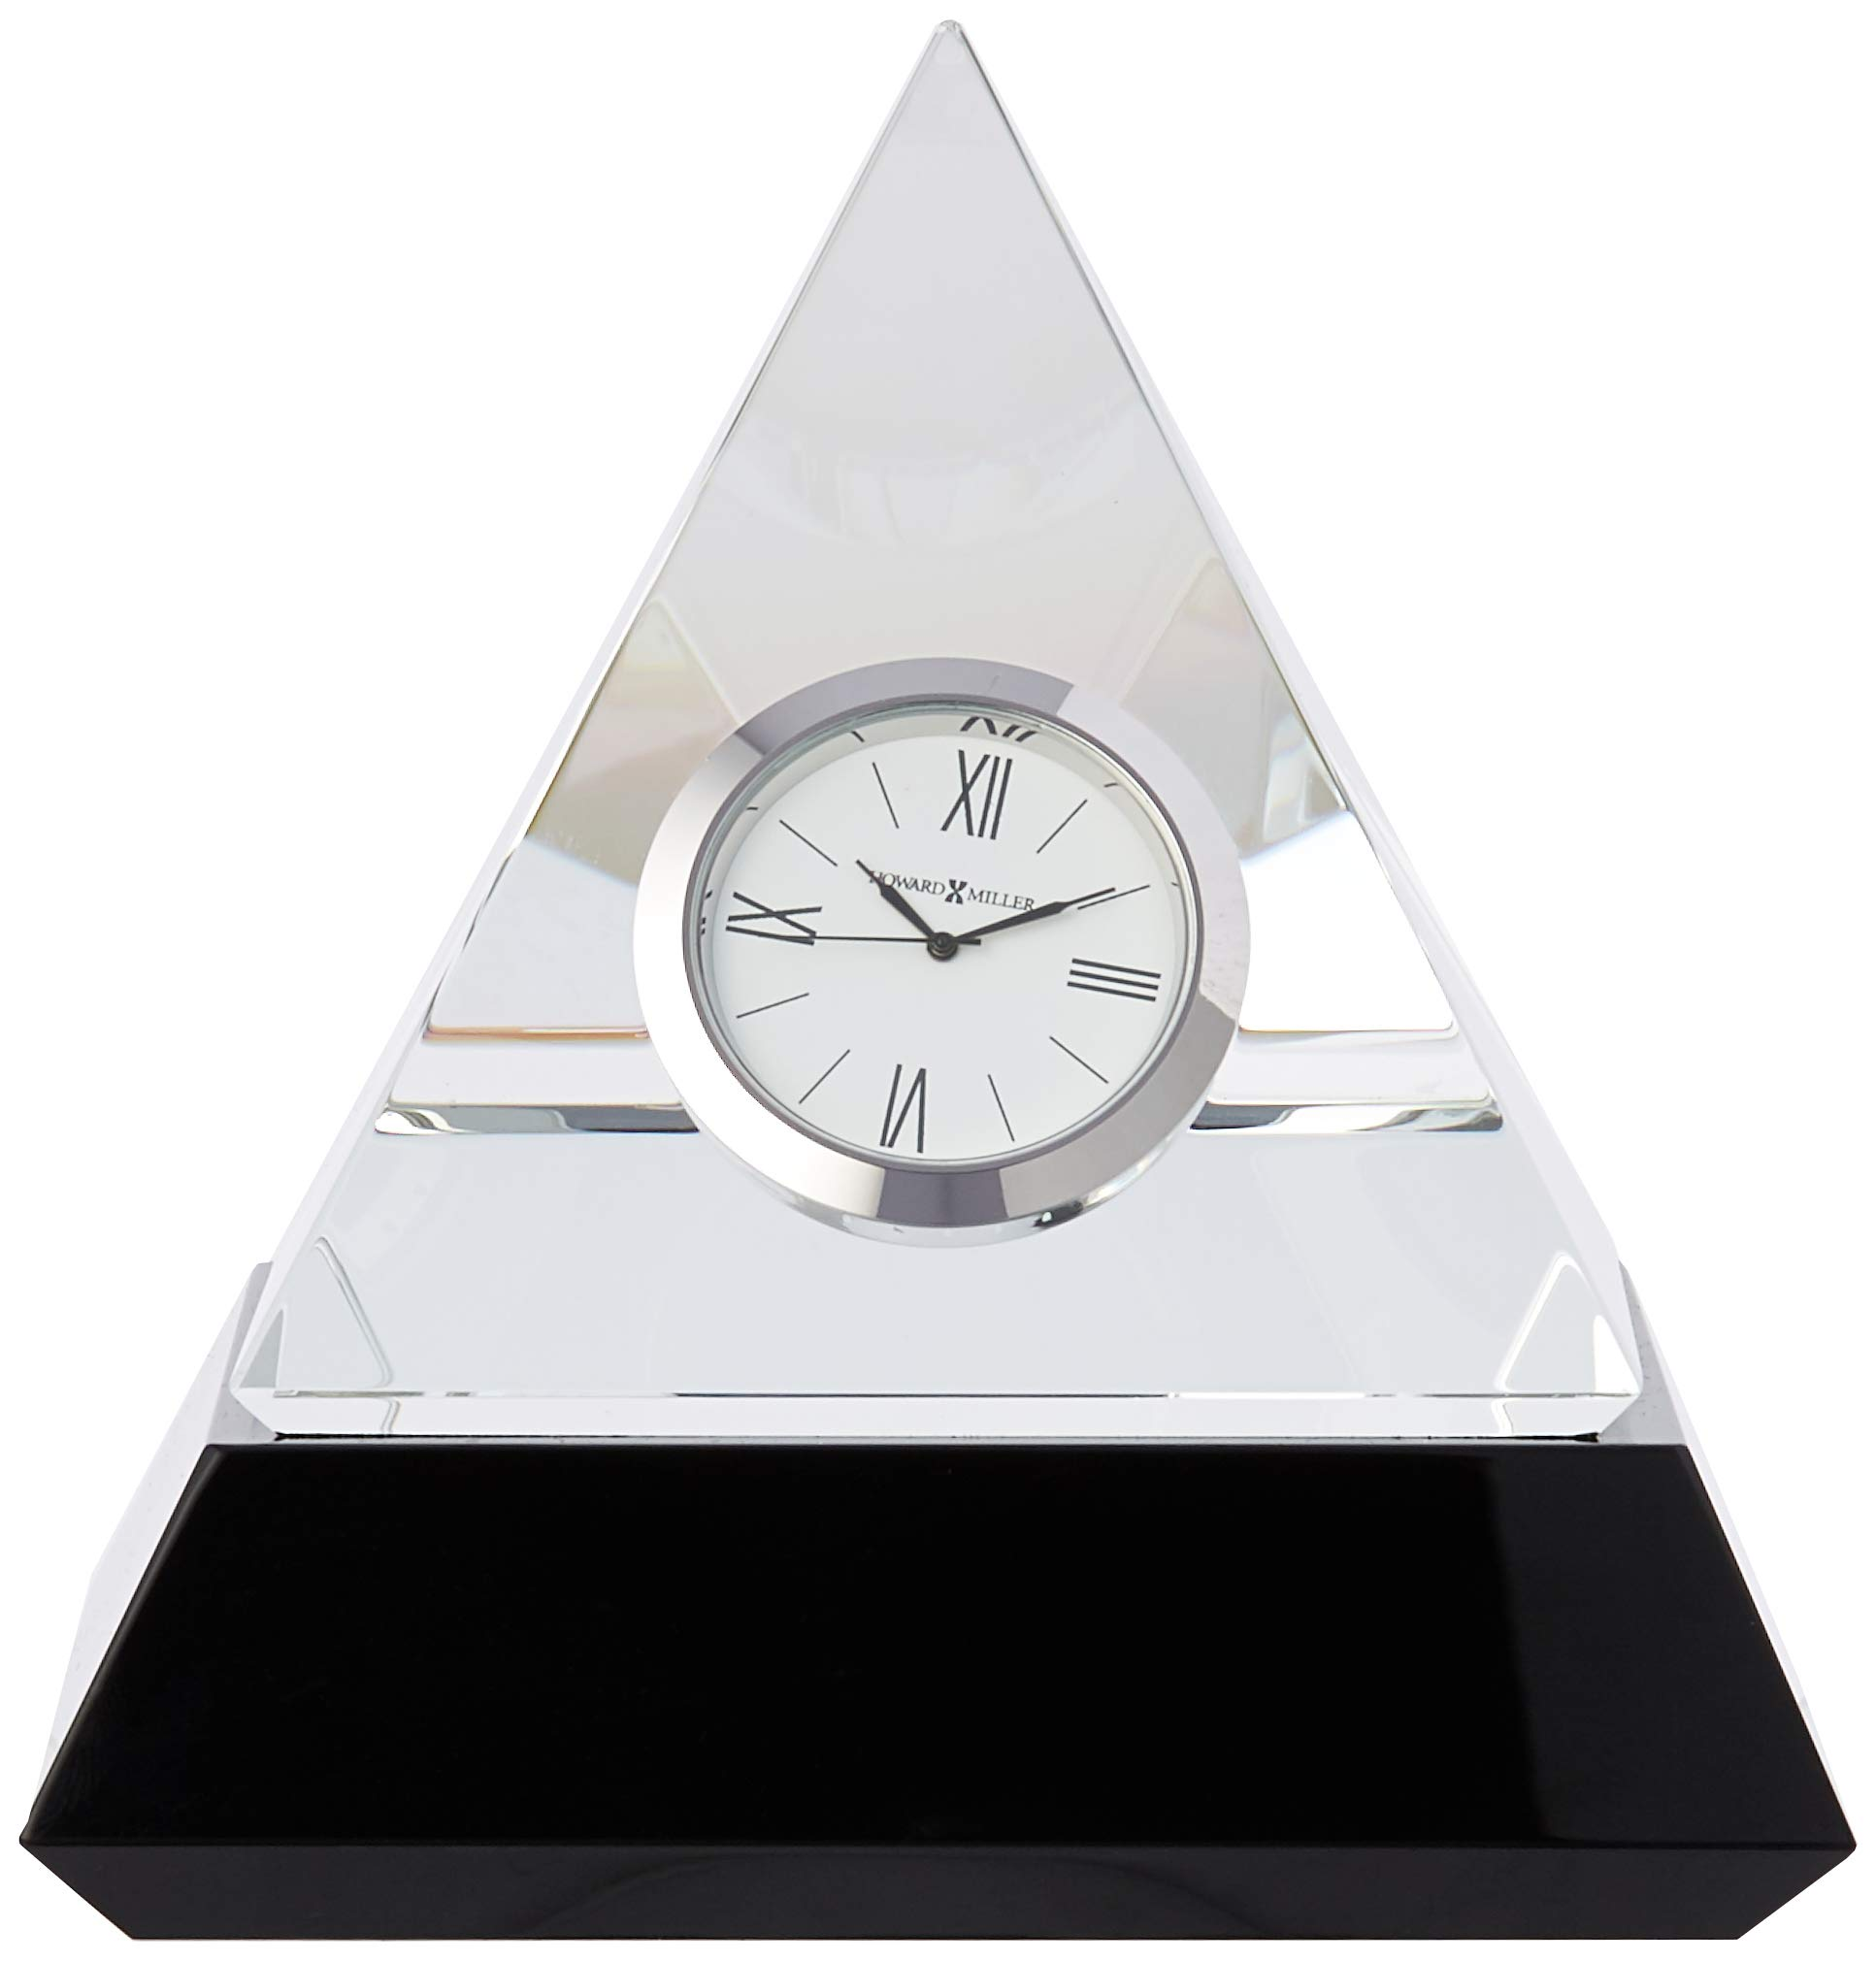 Howard Miller Summit Clock - An intriguing optical crystal pyramid clock sits on a solid black glass base. White dial with black numerals and hour markers, a glass crystal, surrounded by a polished silver-tone bezel. Comes in an elegant black presentation gift box. - clocks, bedroom-decor, bedroom - 61pcH0QCSyL -